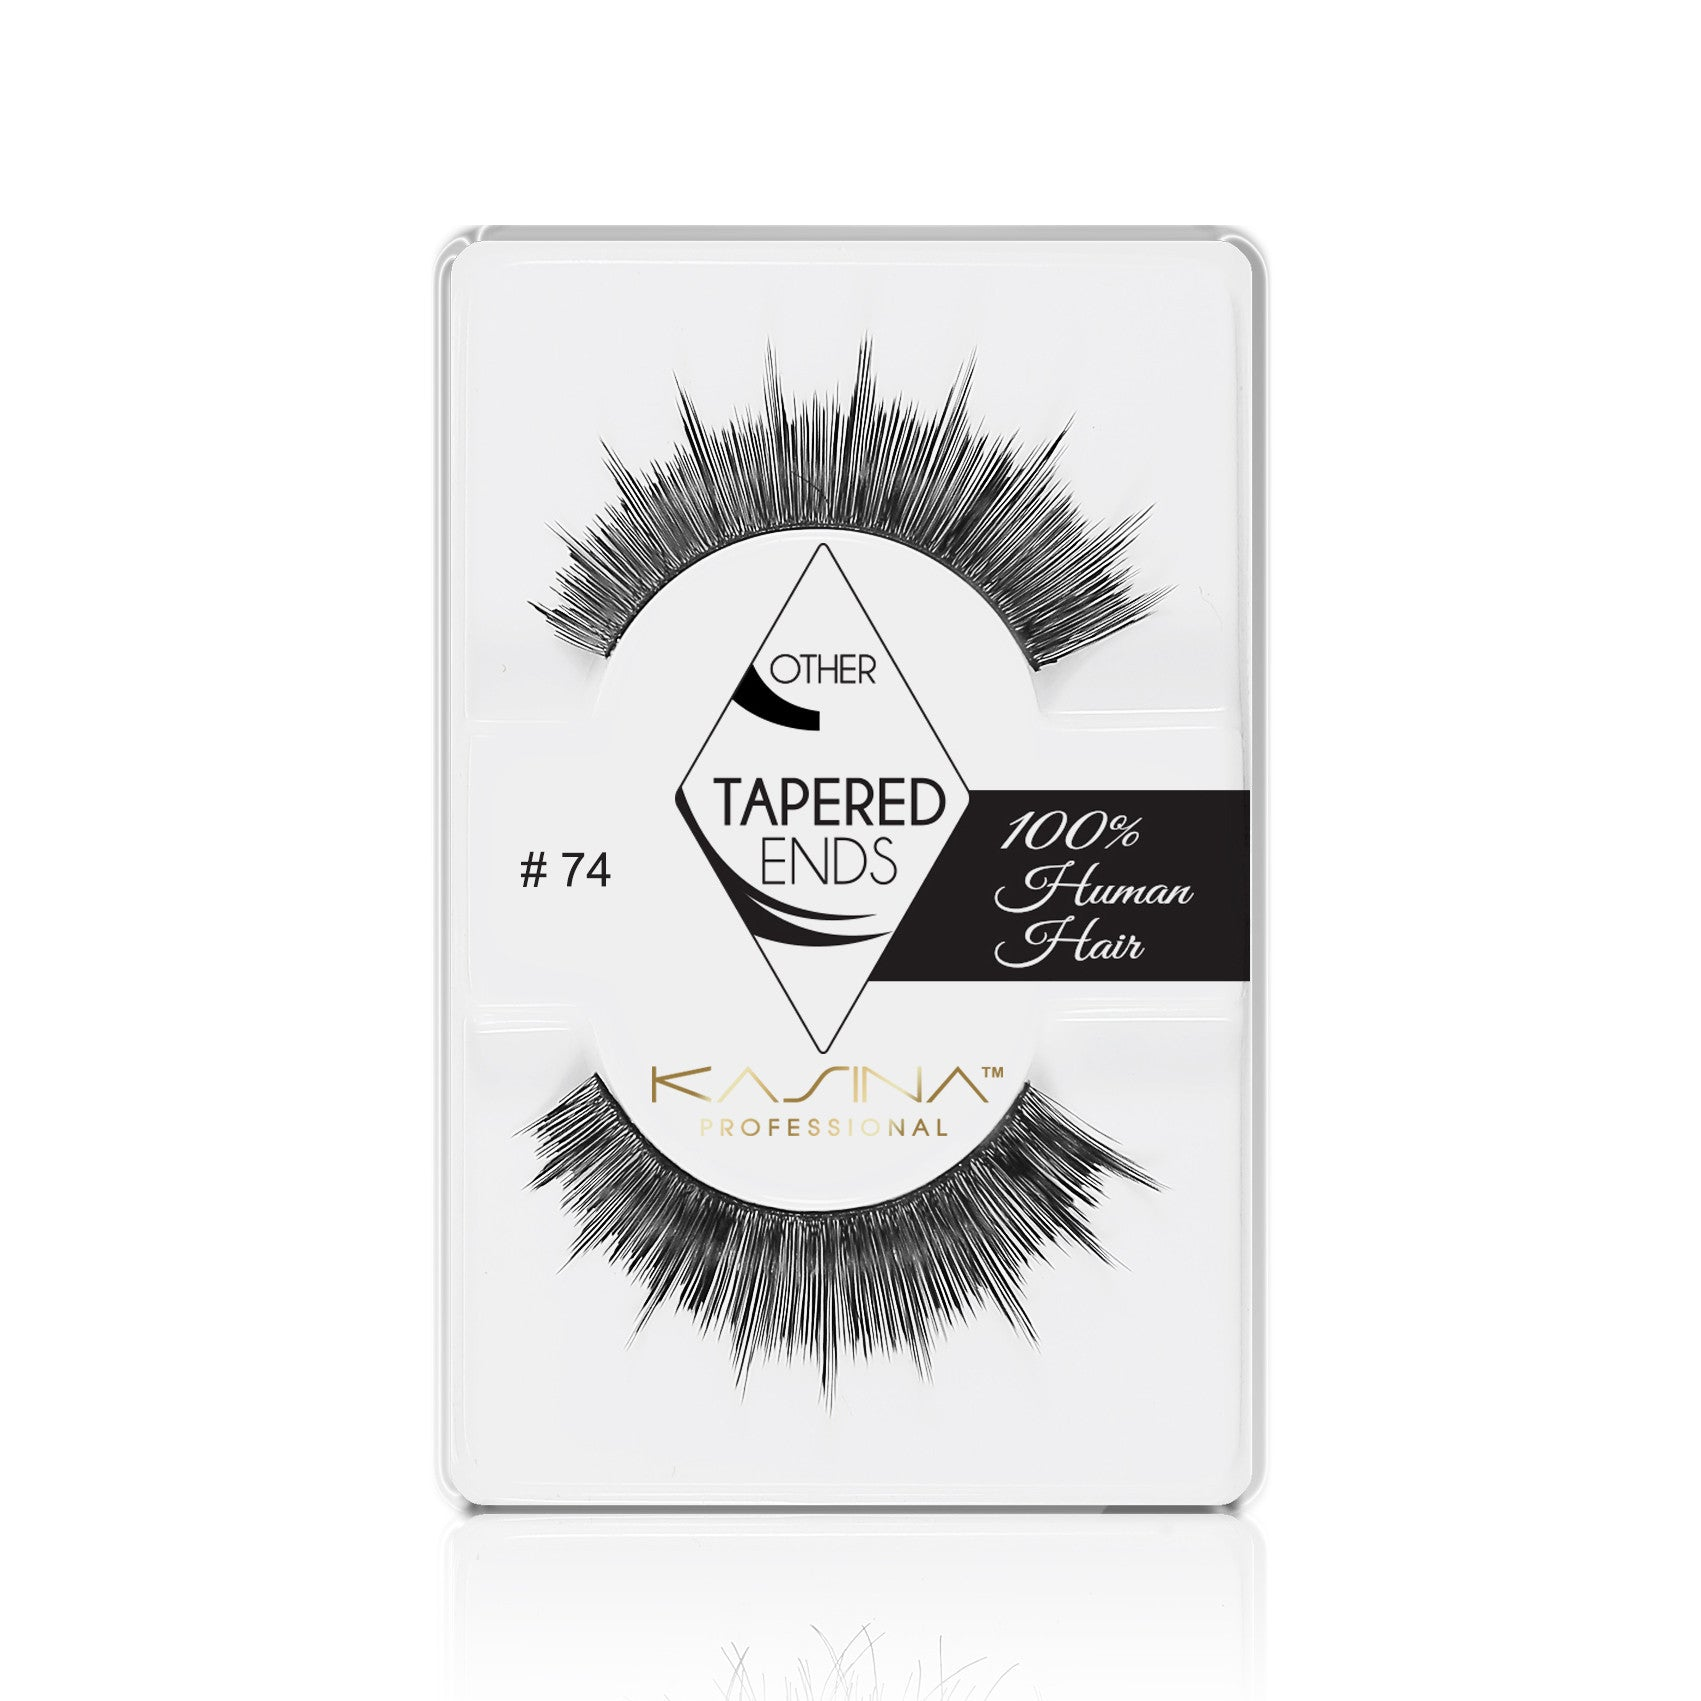 False Lashes - Professional Tapered ends lashes 74T. ZOEY - Recommended by Professional Makeup Artists.